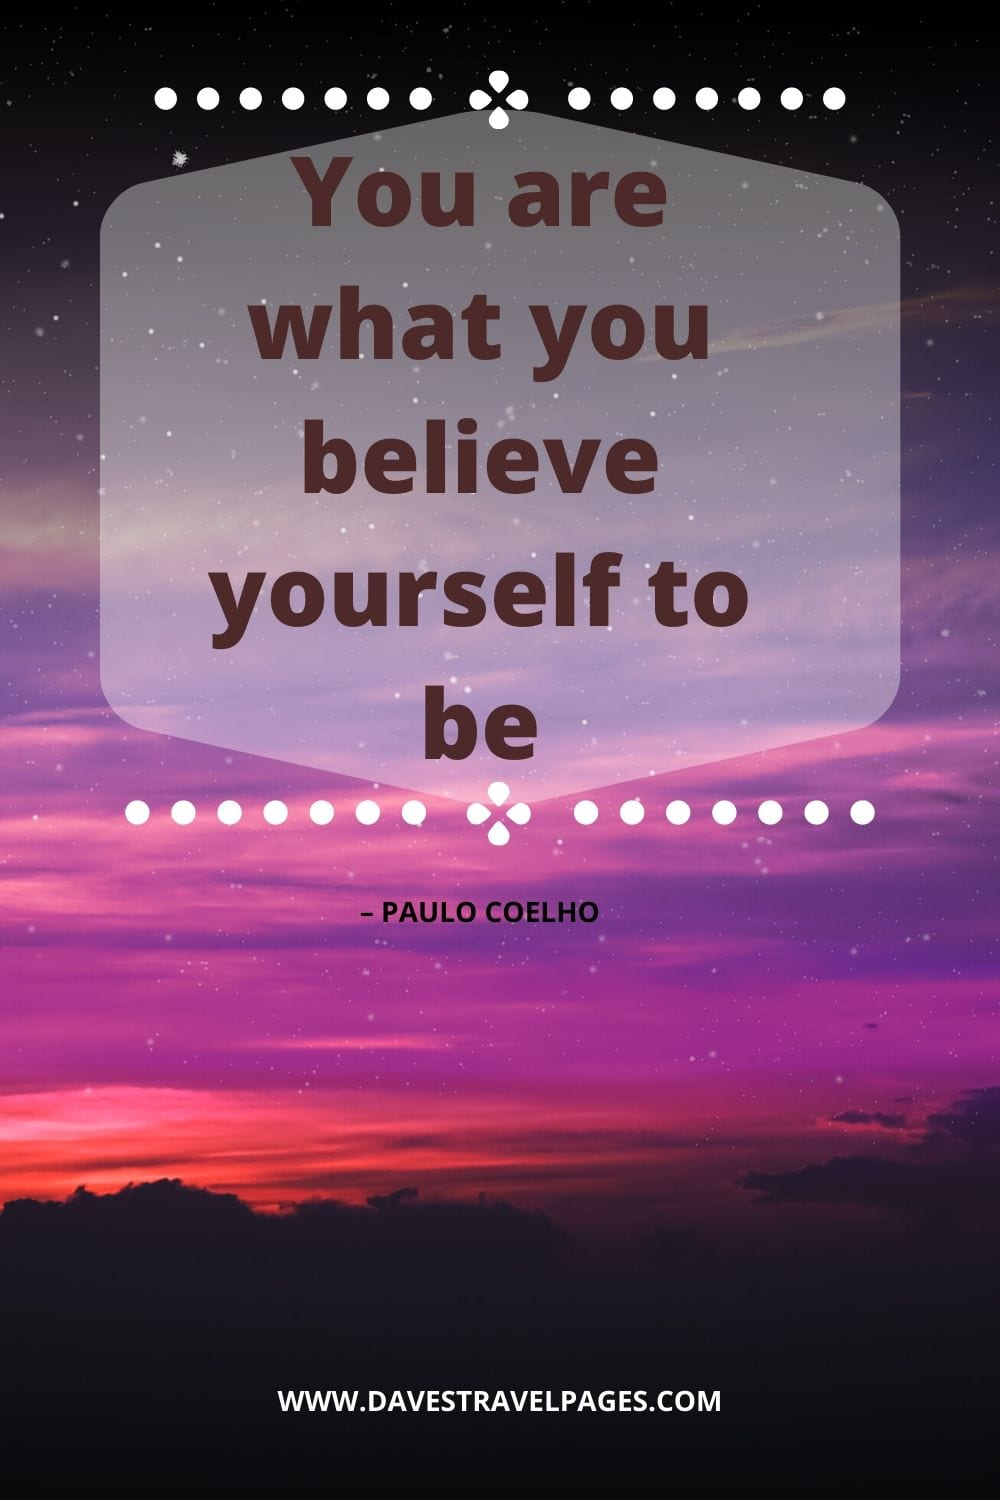 """You are what you believe yourself to be."" – Paulo Coelho insightful quote"